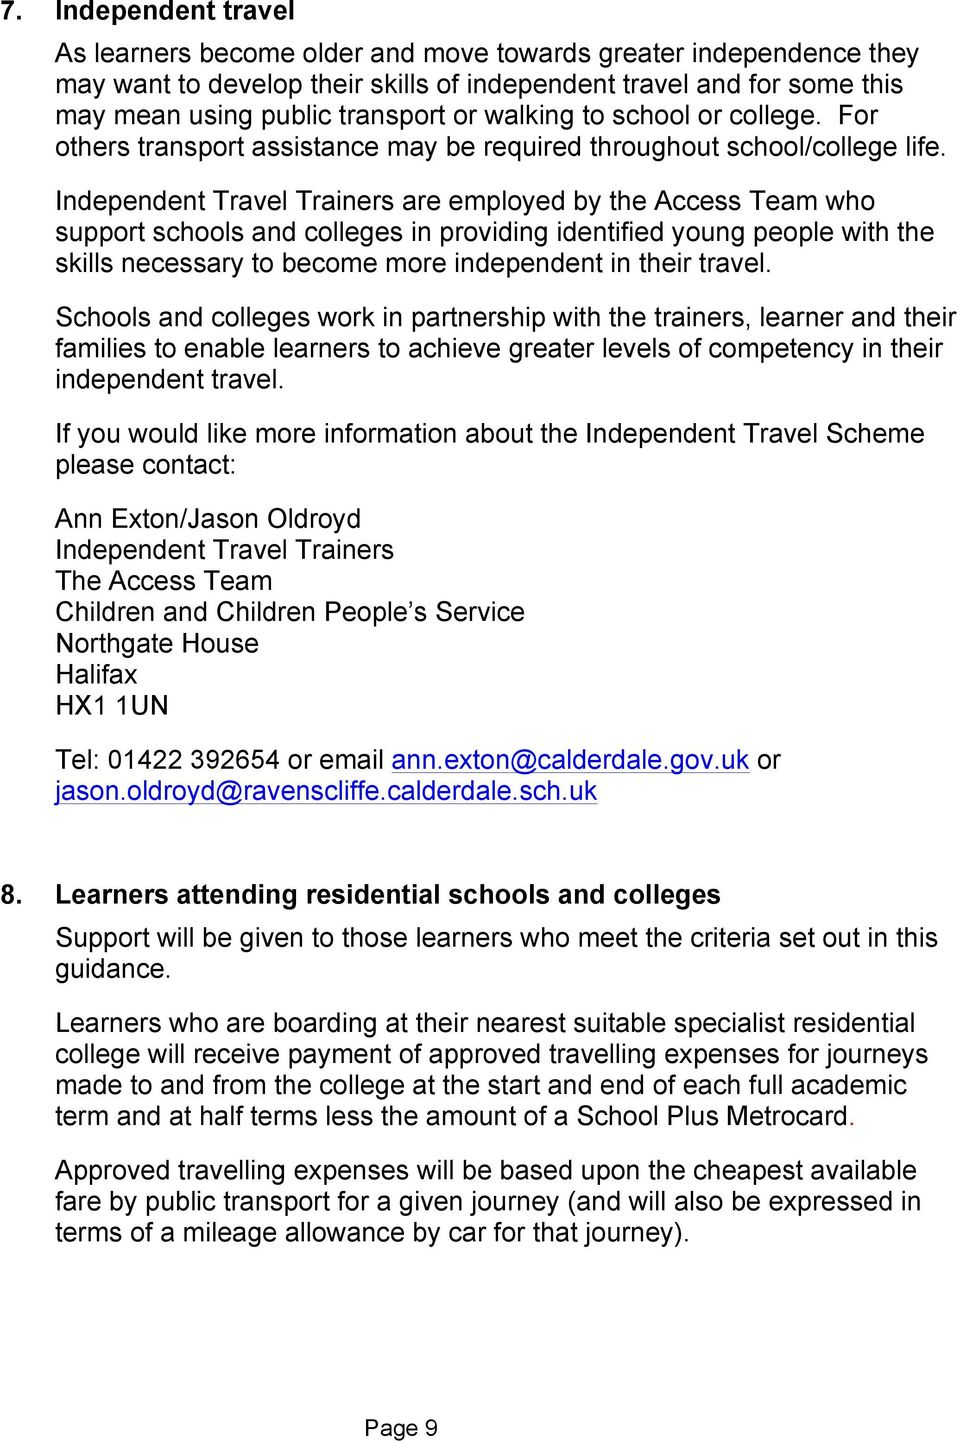 Independent Travel Trainers are employed by the Access Team who support schools and colleges in providing identified young people with the skills necessary to become more independent in their travel.